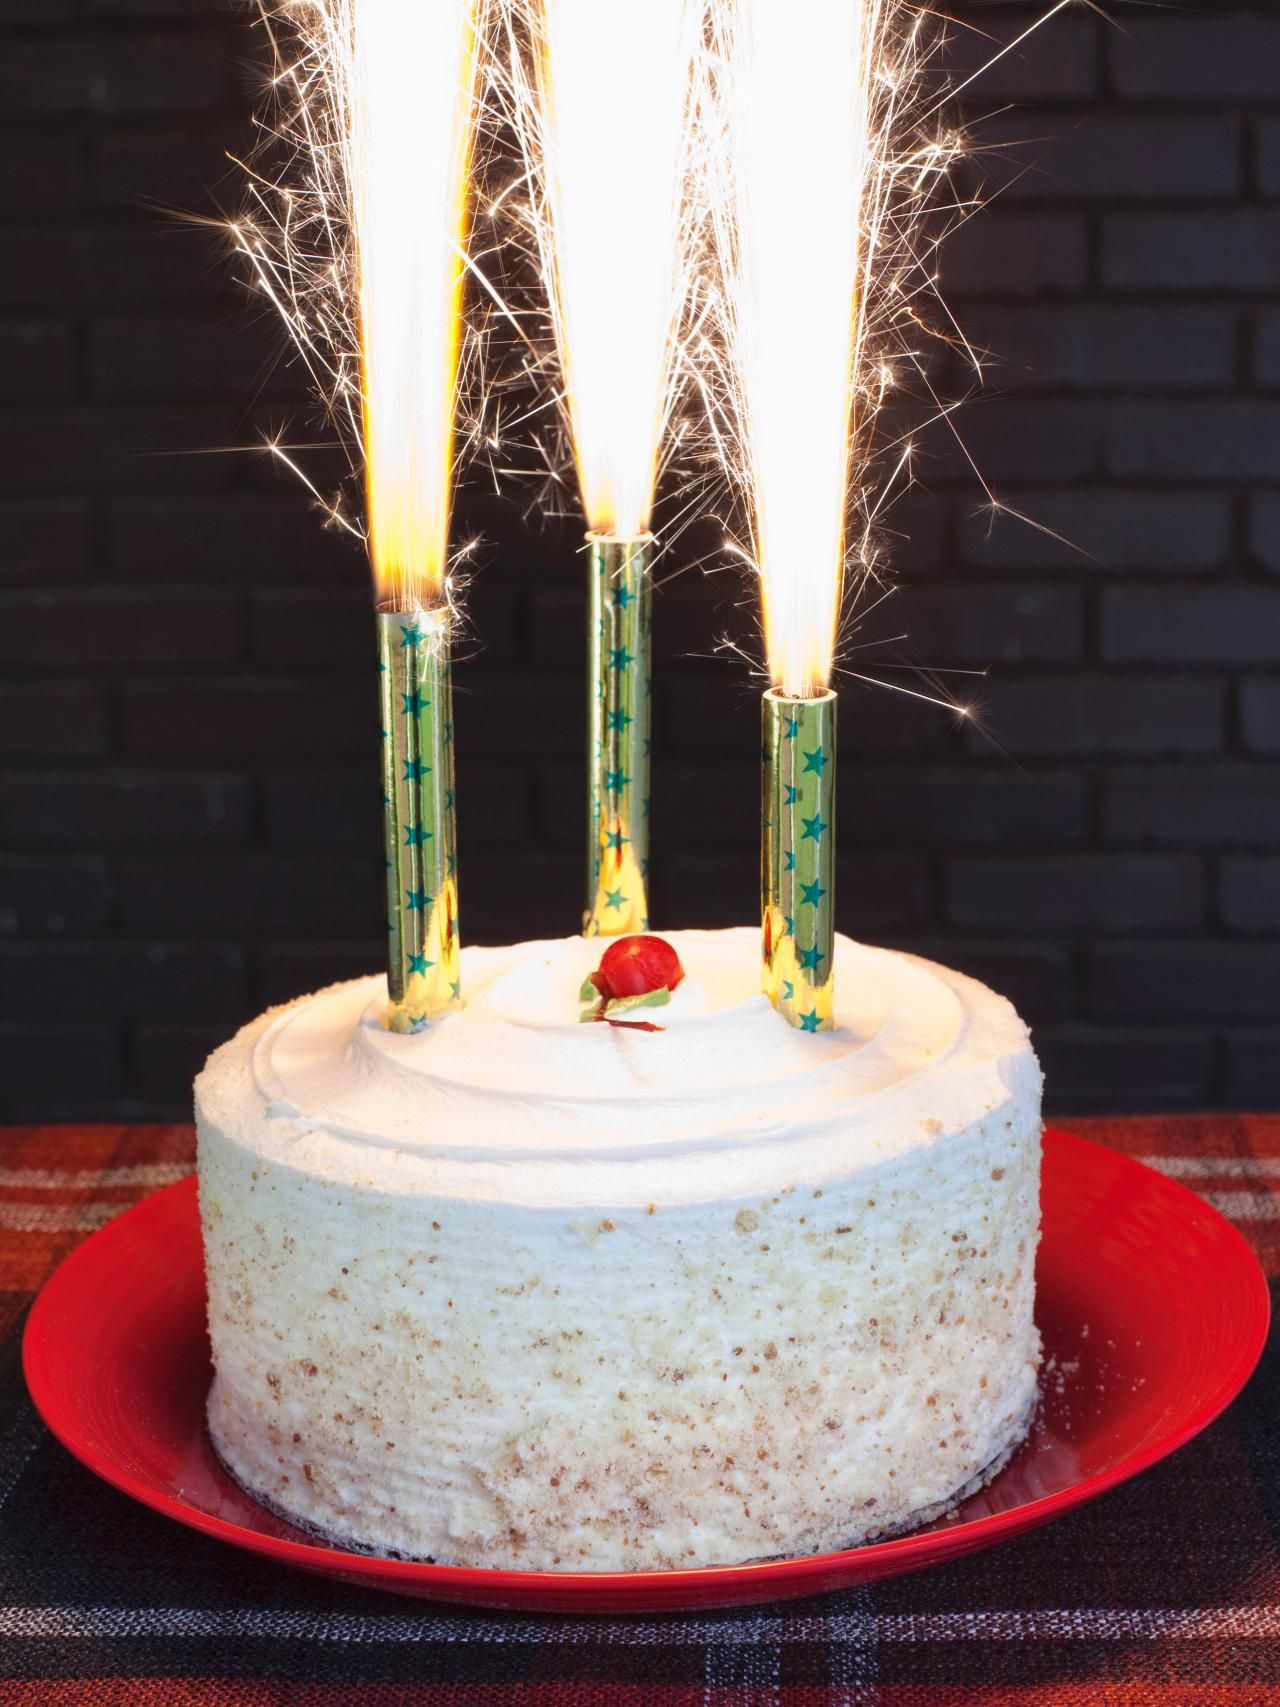 Simply Chic Fourth of July Entertaining Ideas Cake sparklers Wax